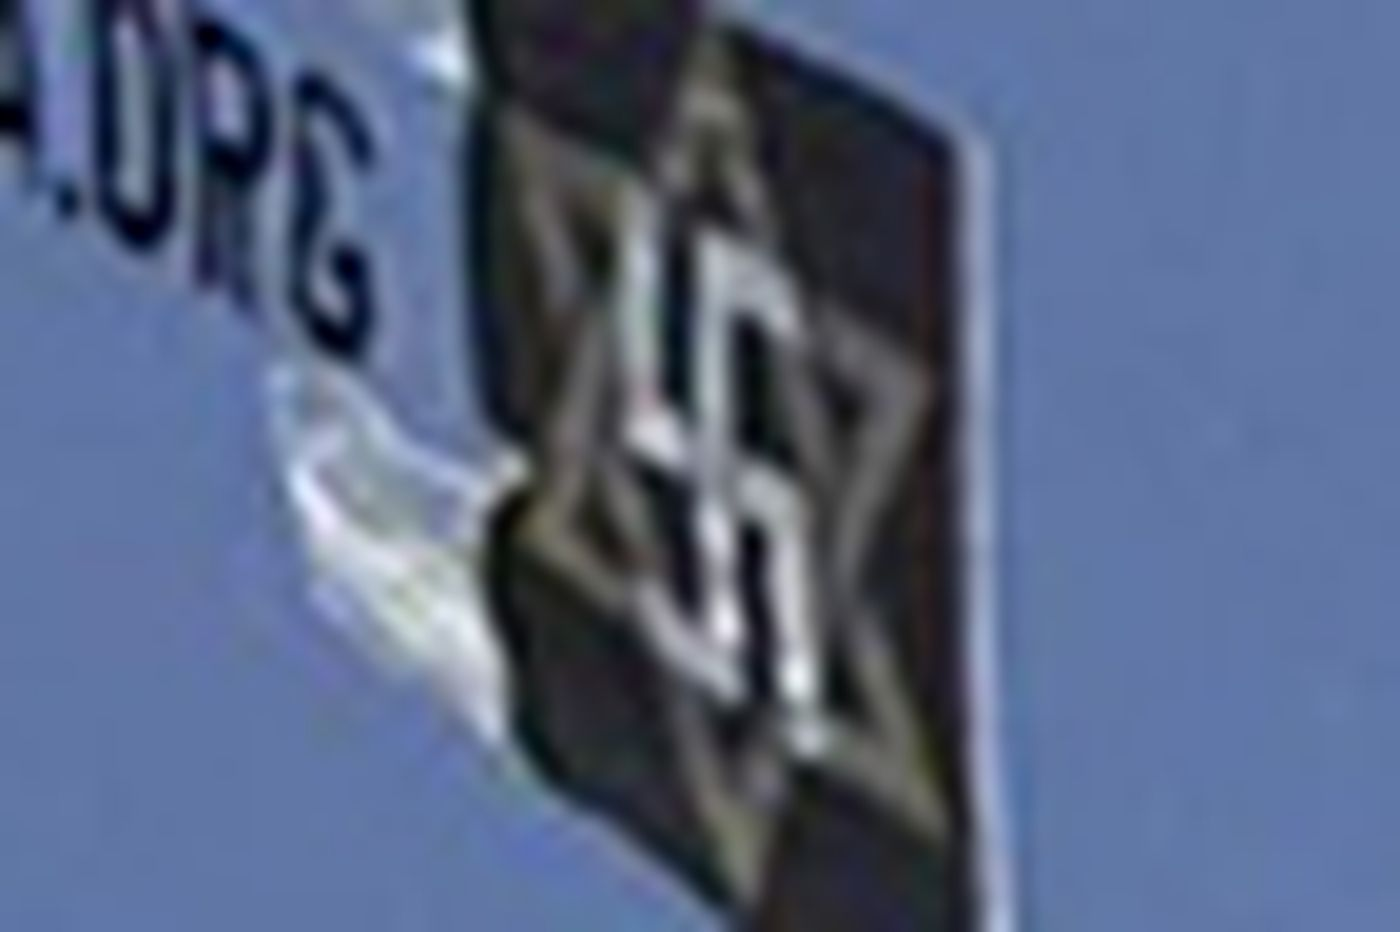 Flying swastika causes alarm at Jersey Shore